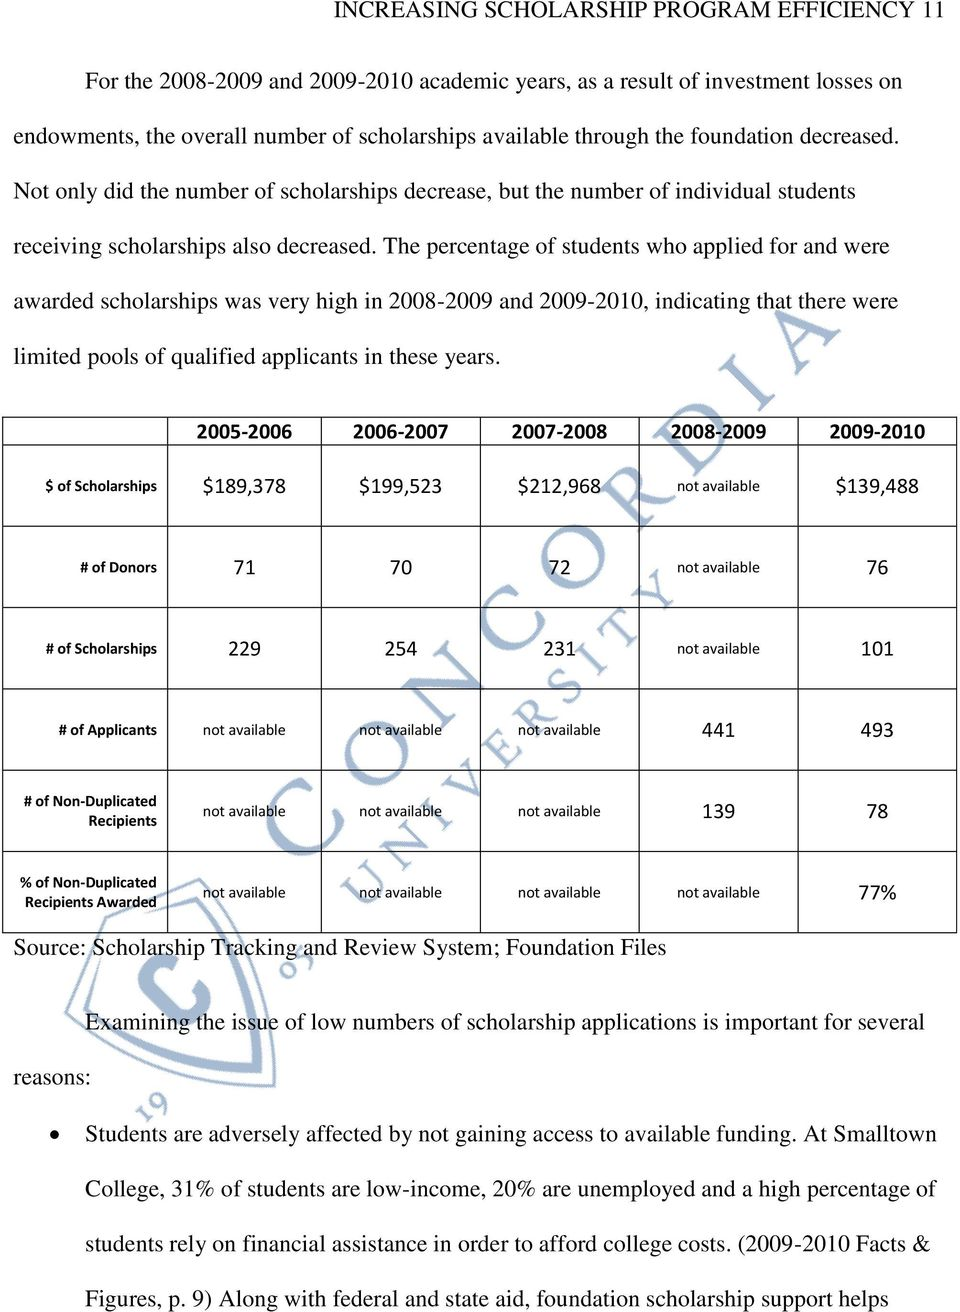 The percentage of students who applied for and were awarded scholarships was very high in 2008-2009 and 2009-2010, indicating that there were limited pools of qualified applicants in these years.